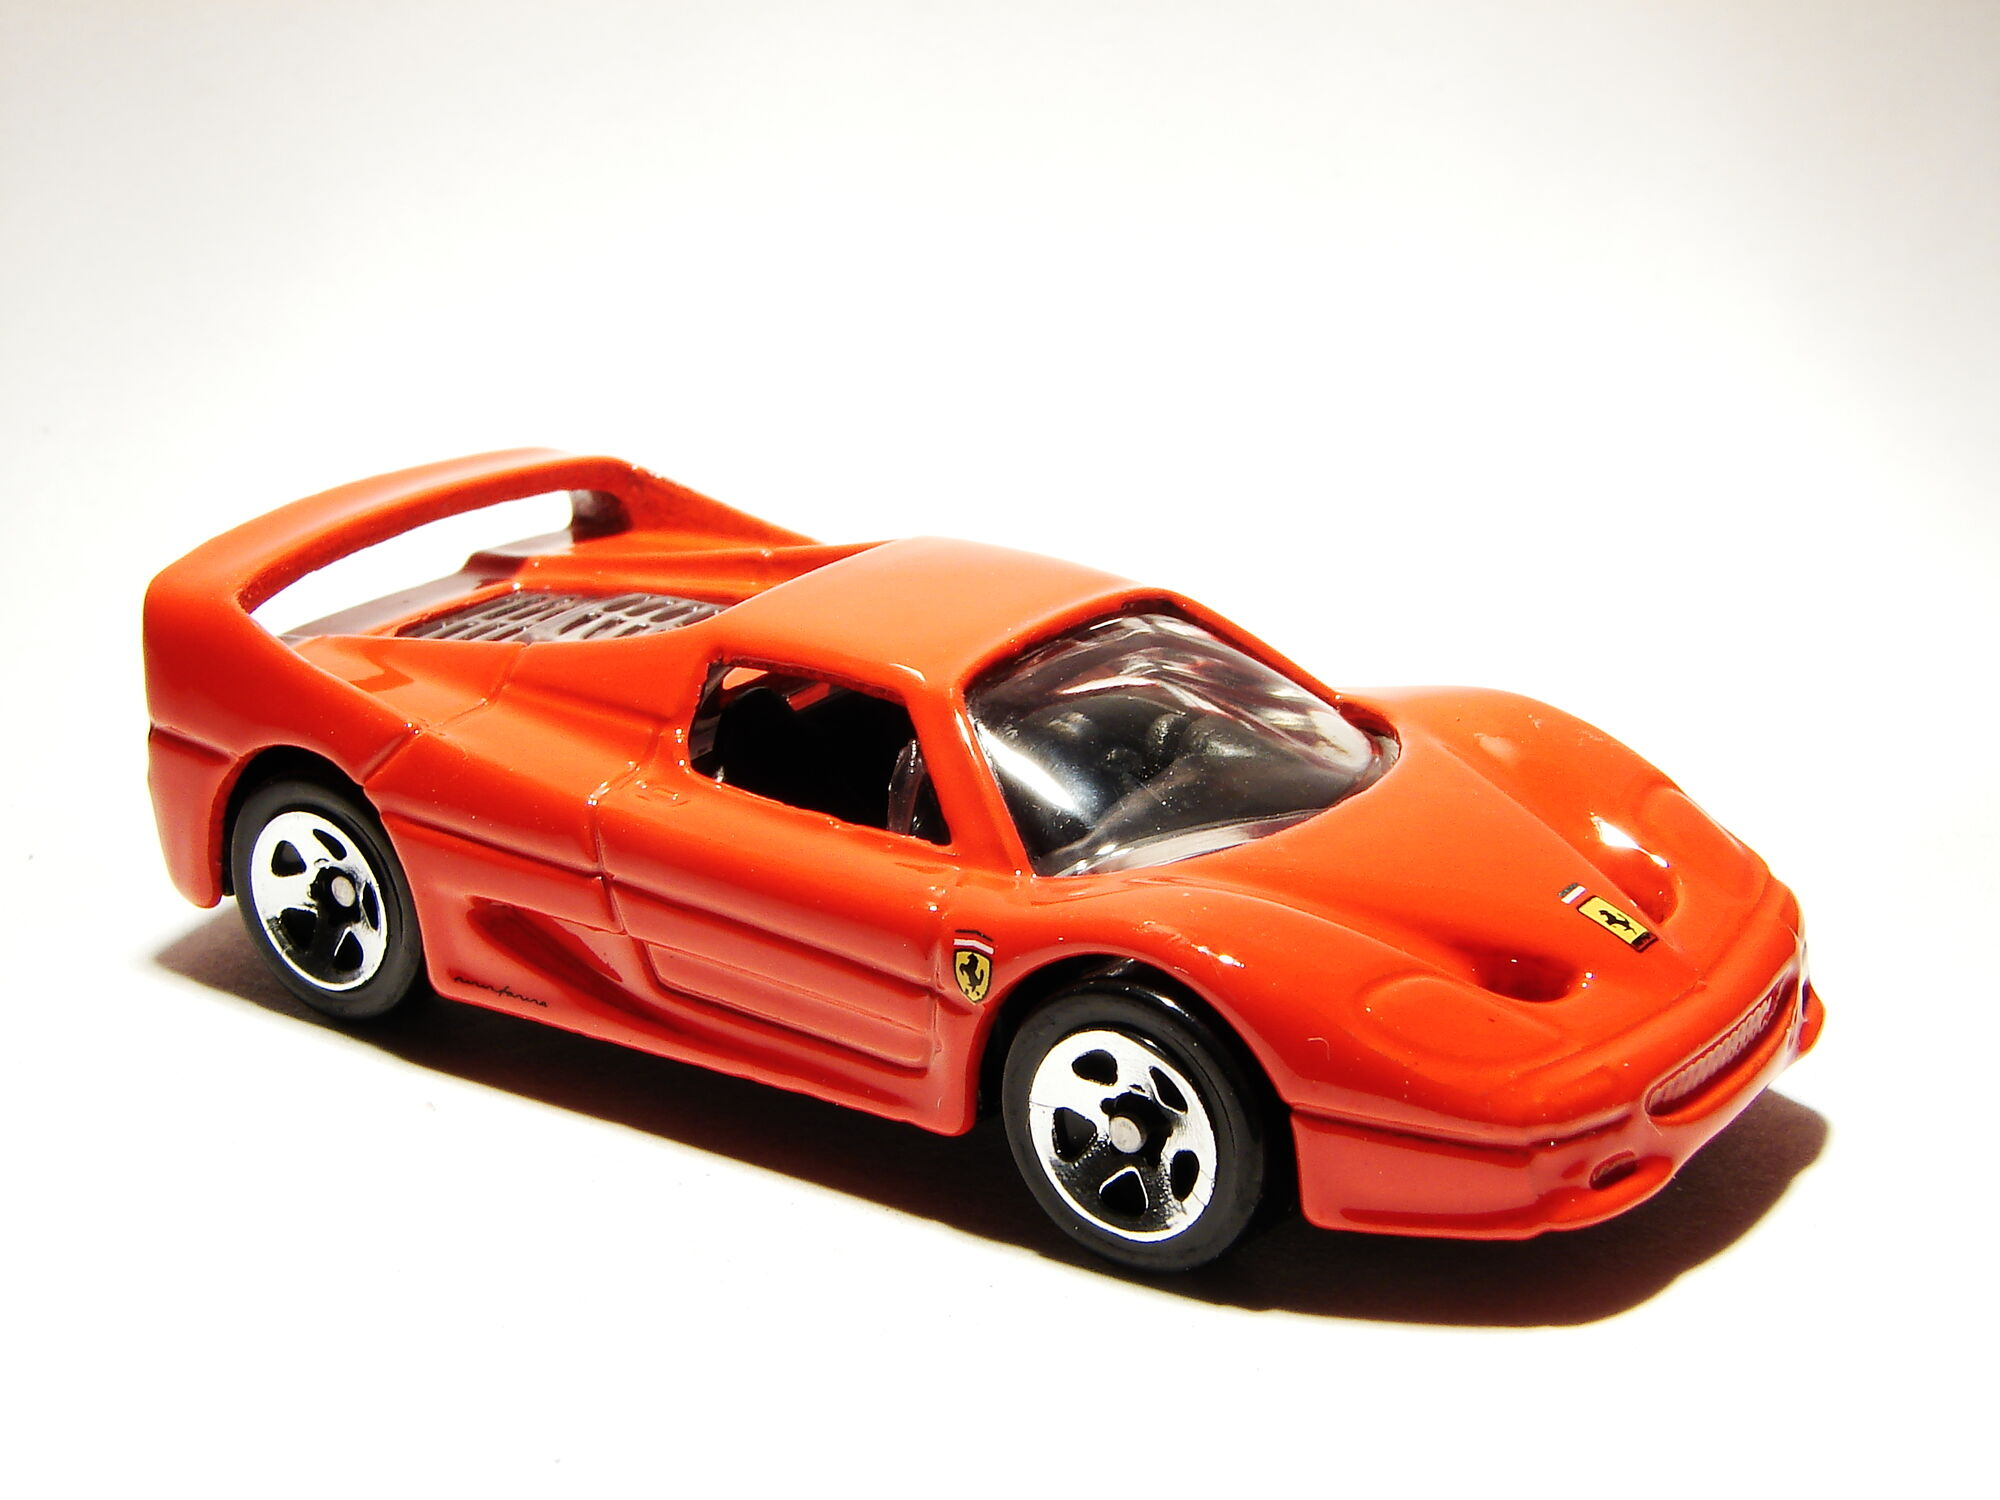 ferrari f50 challenge hot wheels wiki fandom powered. Black Bedroom Furniture Sets. Home Design Ideas